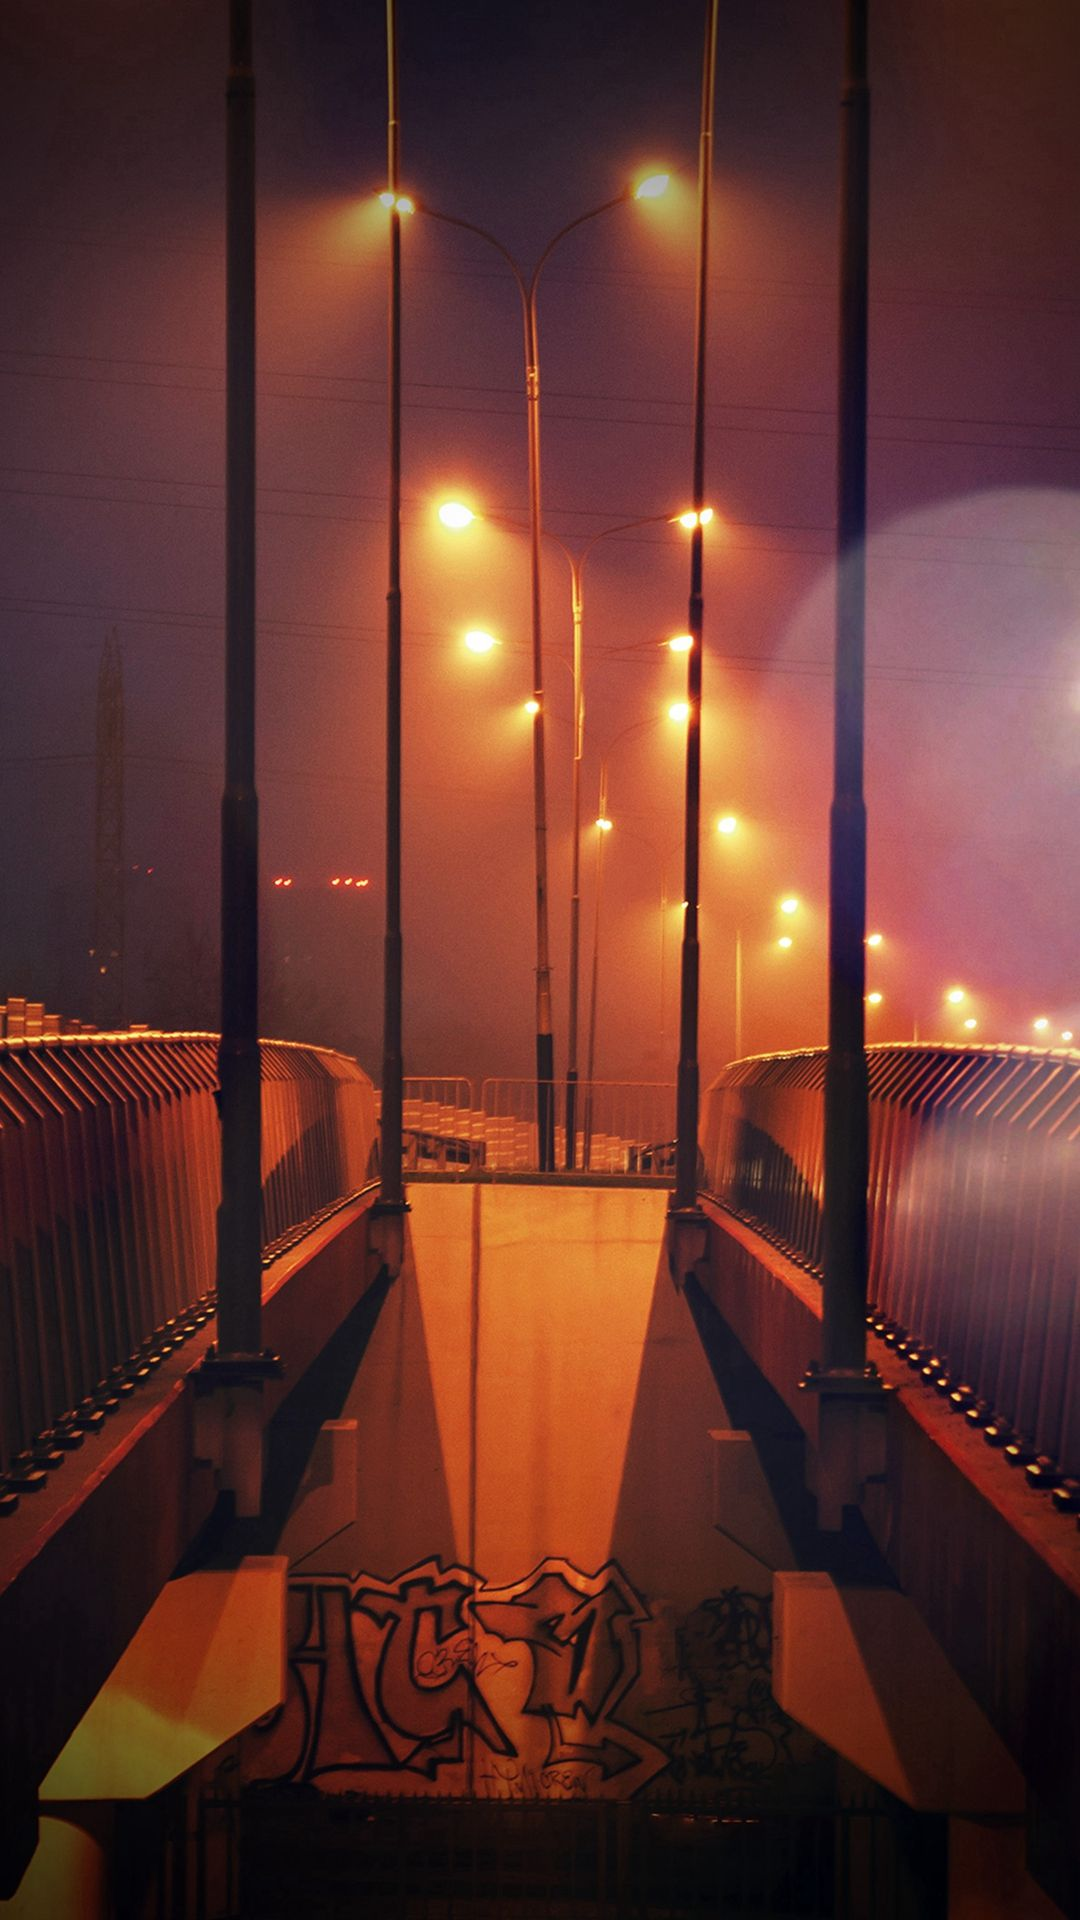 Night Bridge City View Lights Street Orange Flare IPhone 6 Plus Wallpaper